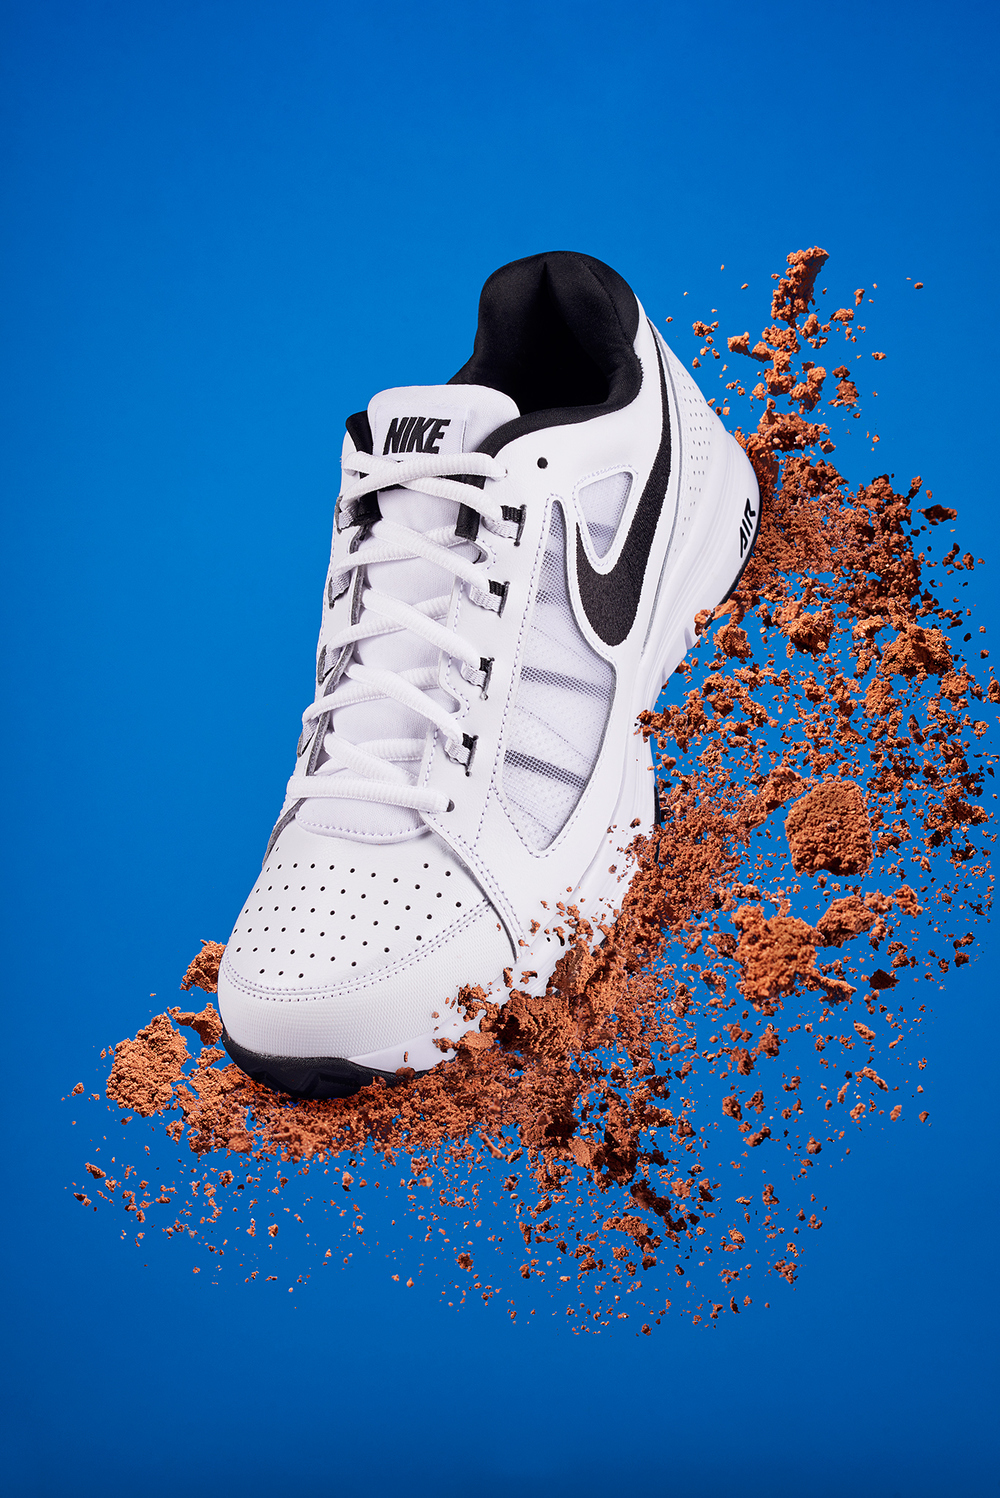 product-photographer-budapest-tennis-shoe-testshoot-marton-botond.jpg